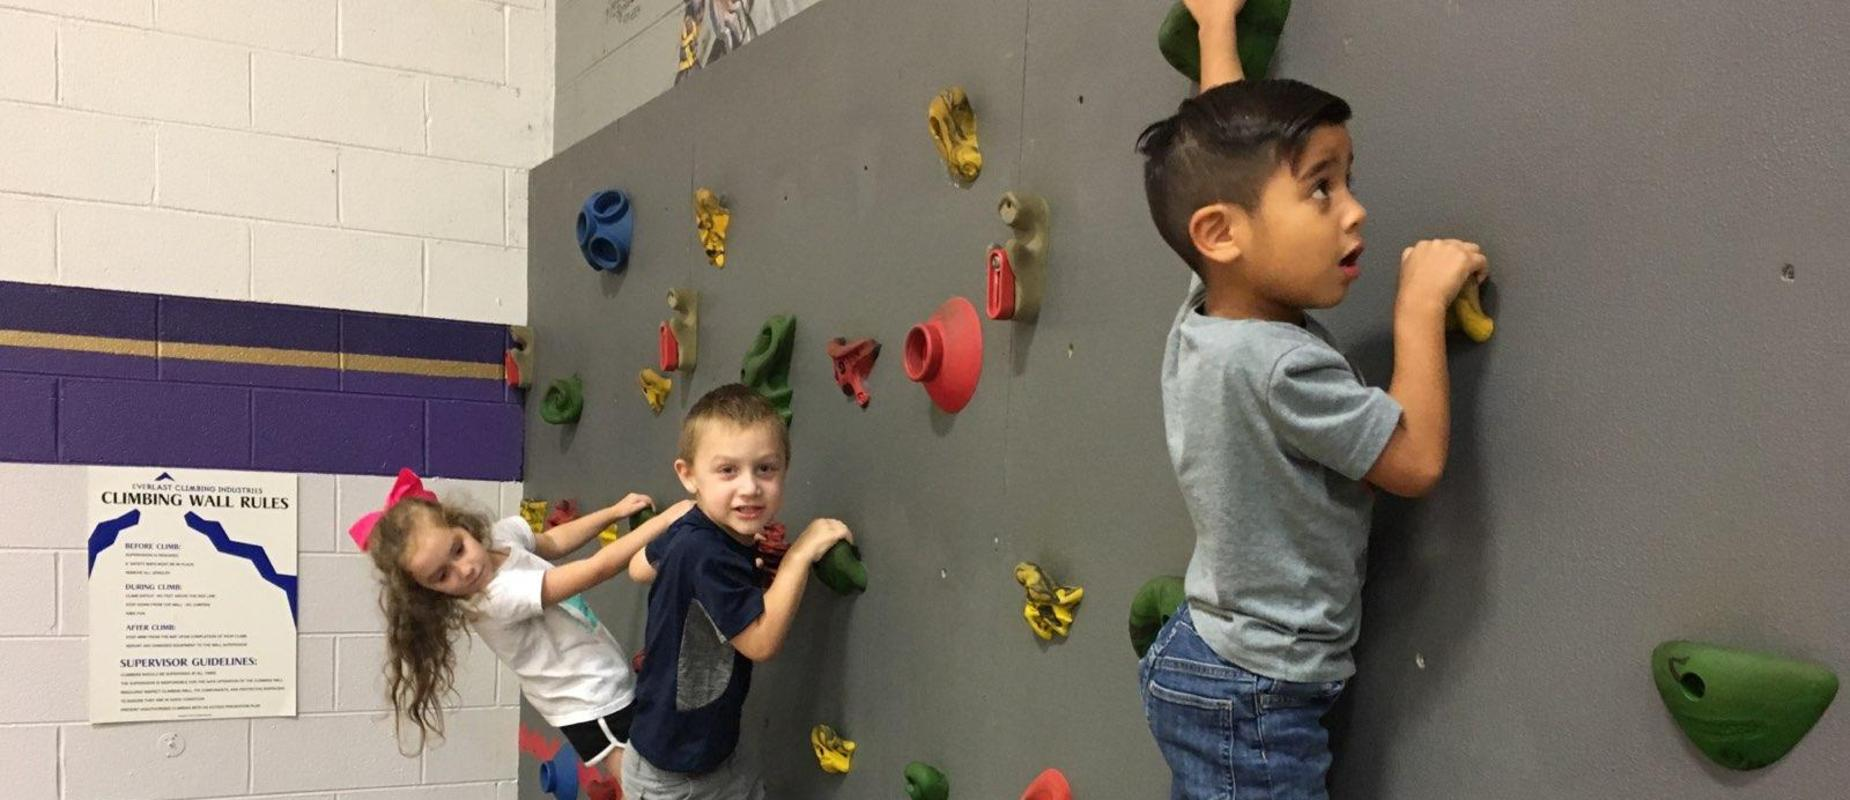 Students climbing wall